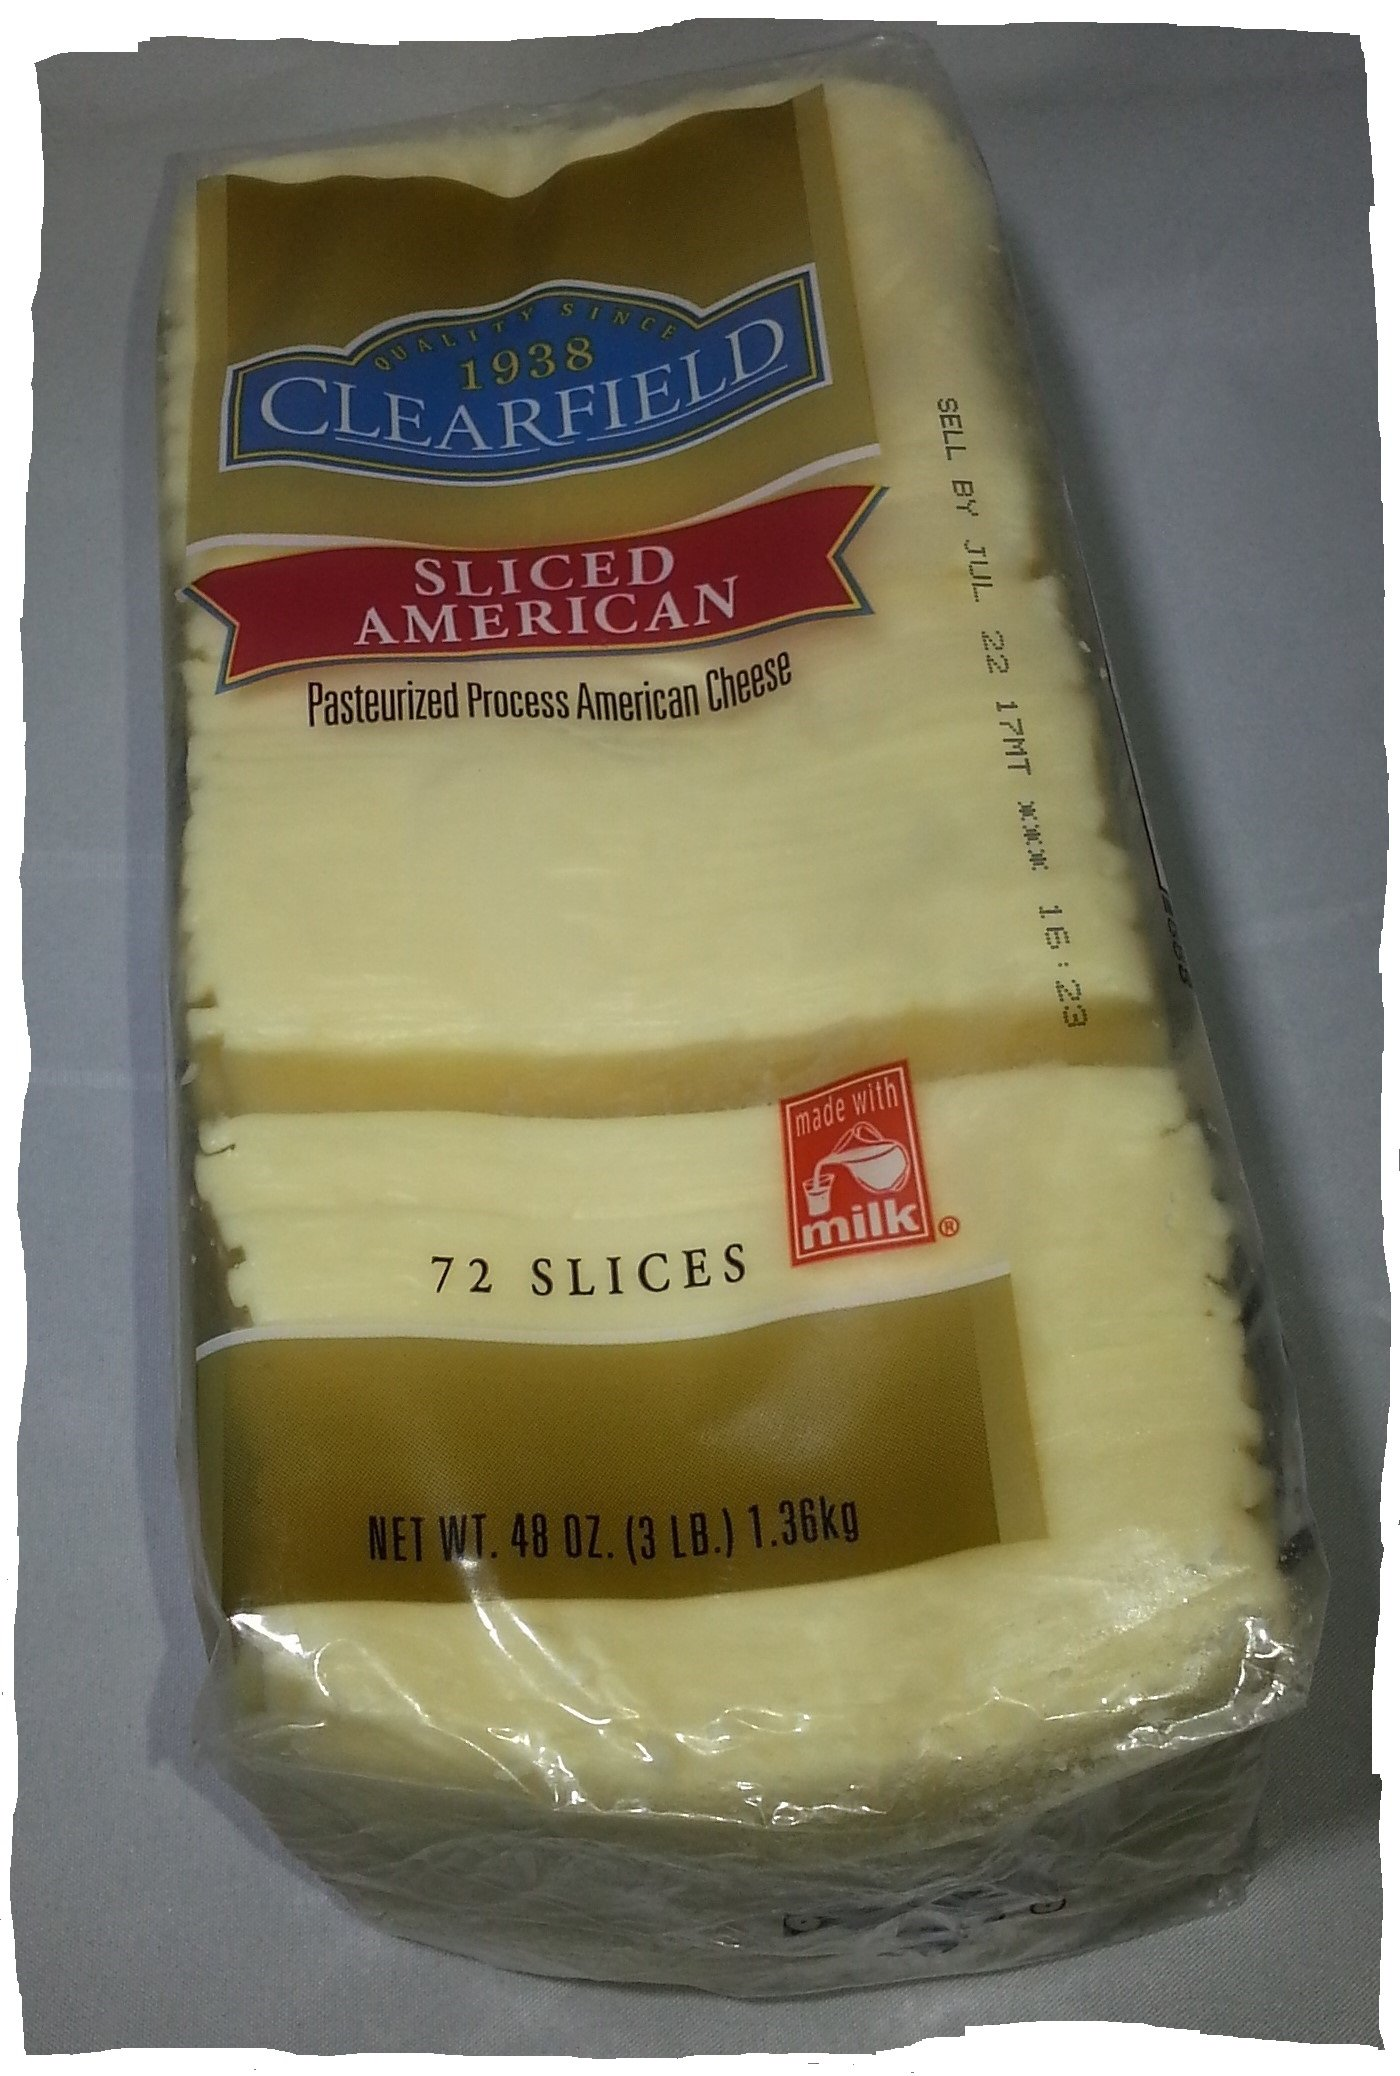 CLEARFIELD SLICED AMERICAN CHEESE. WHITE. 3 LB. 72 SLICES.